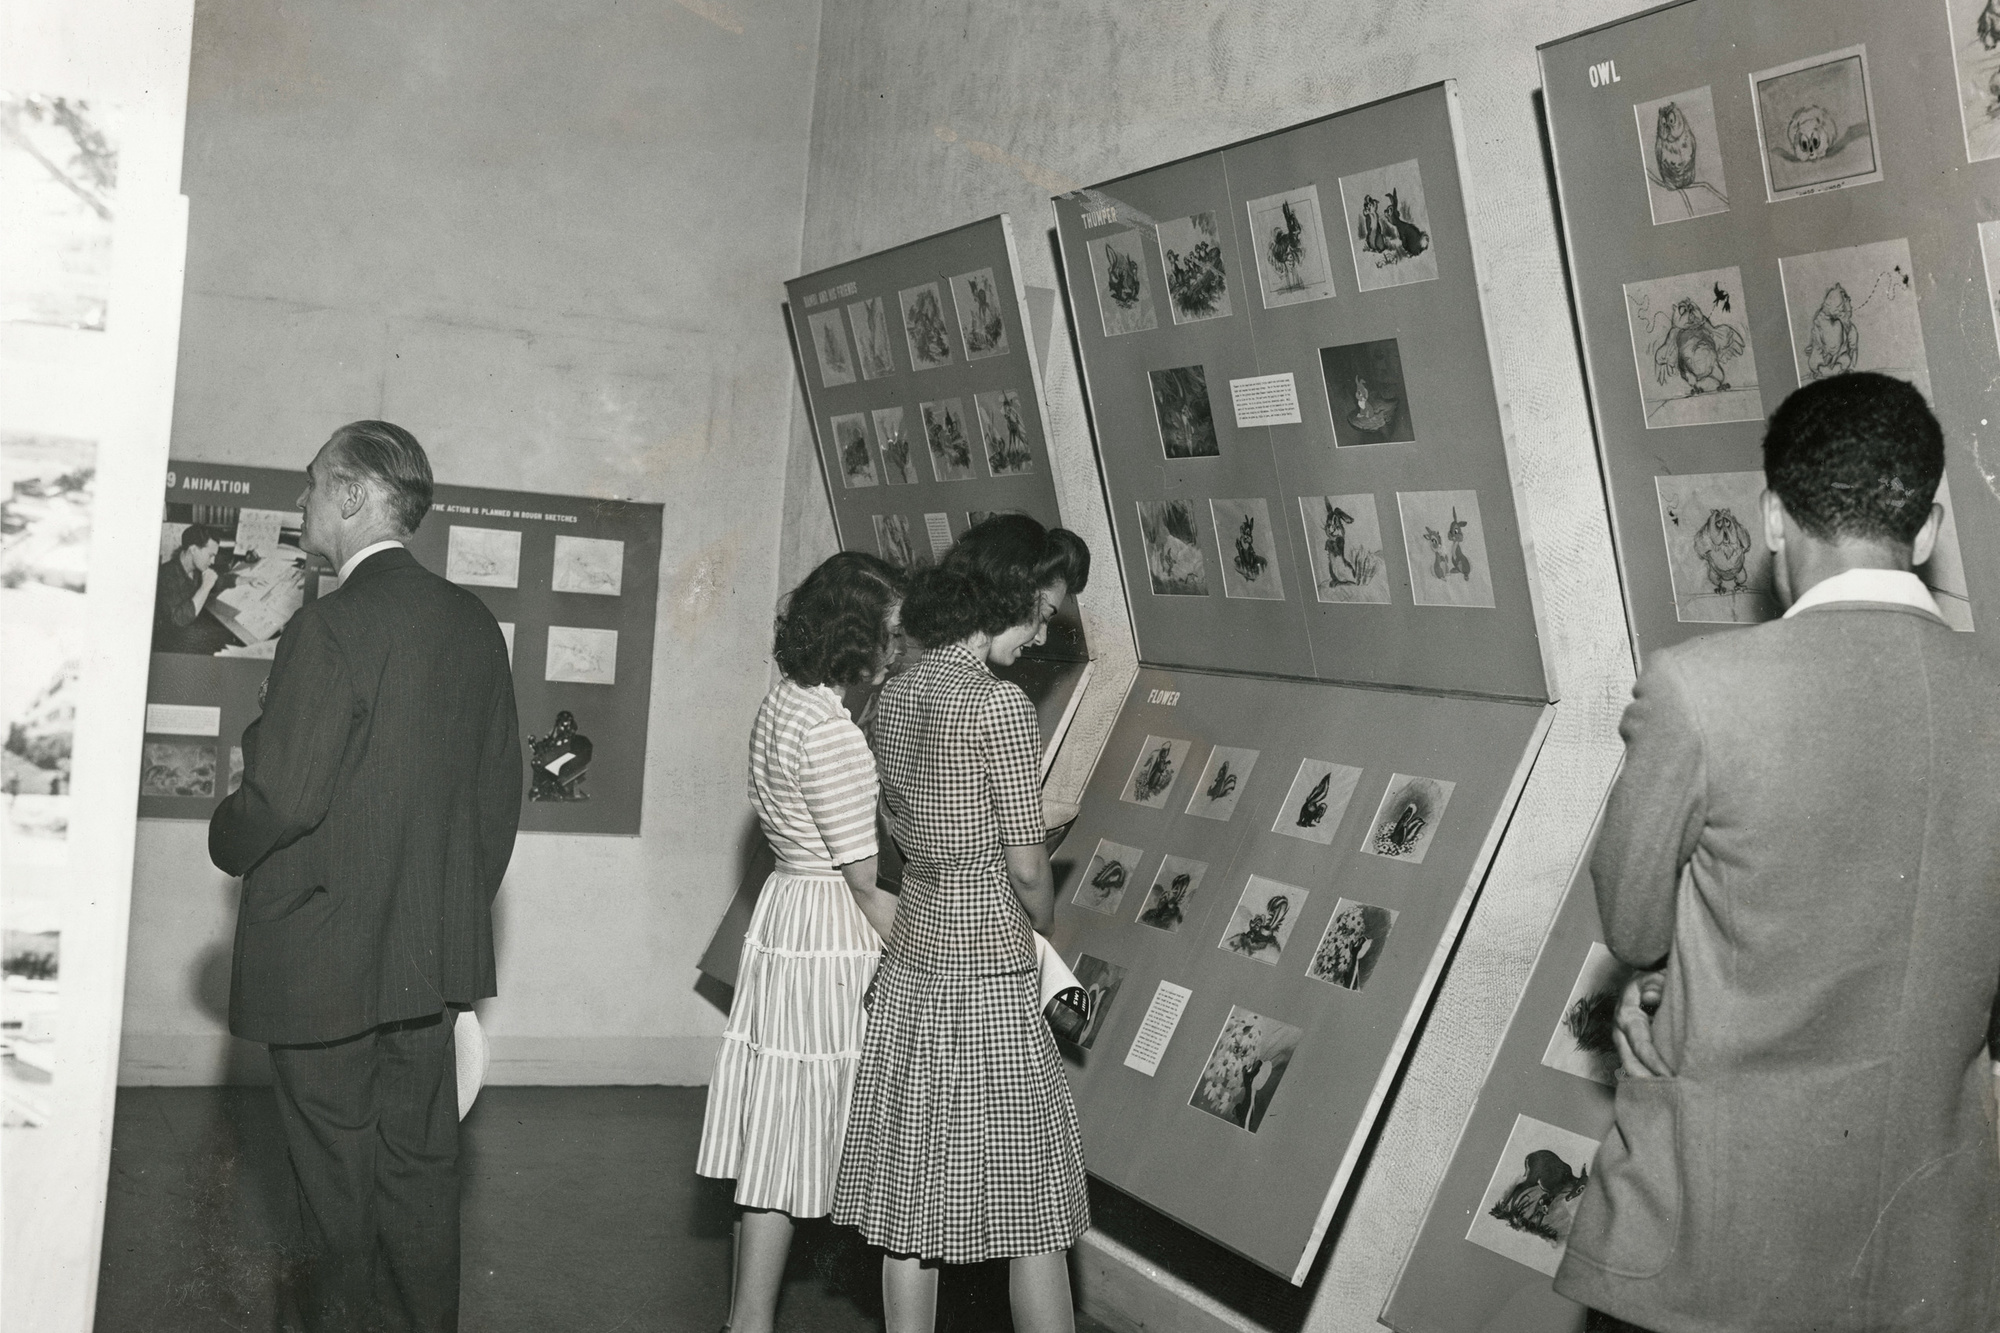 Installation view of Bambi: The Making of an Animated Sound Picture at The Museum of Modern Art, New York